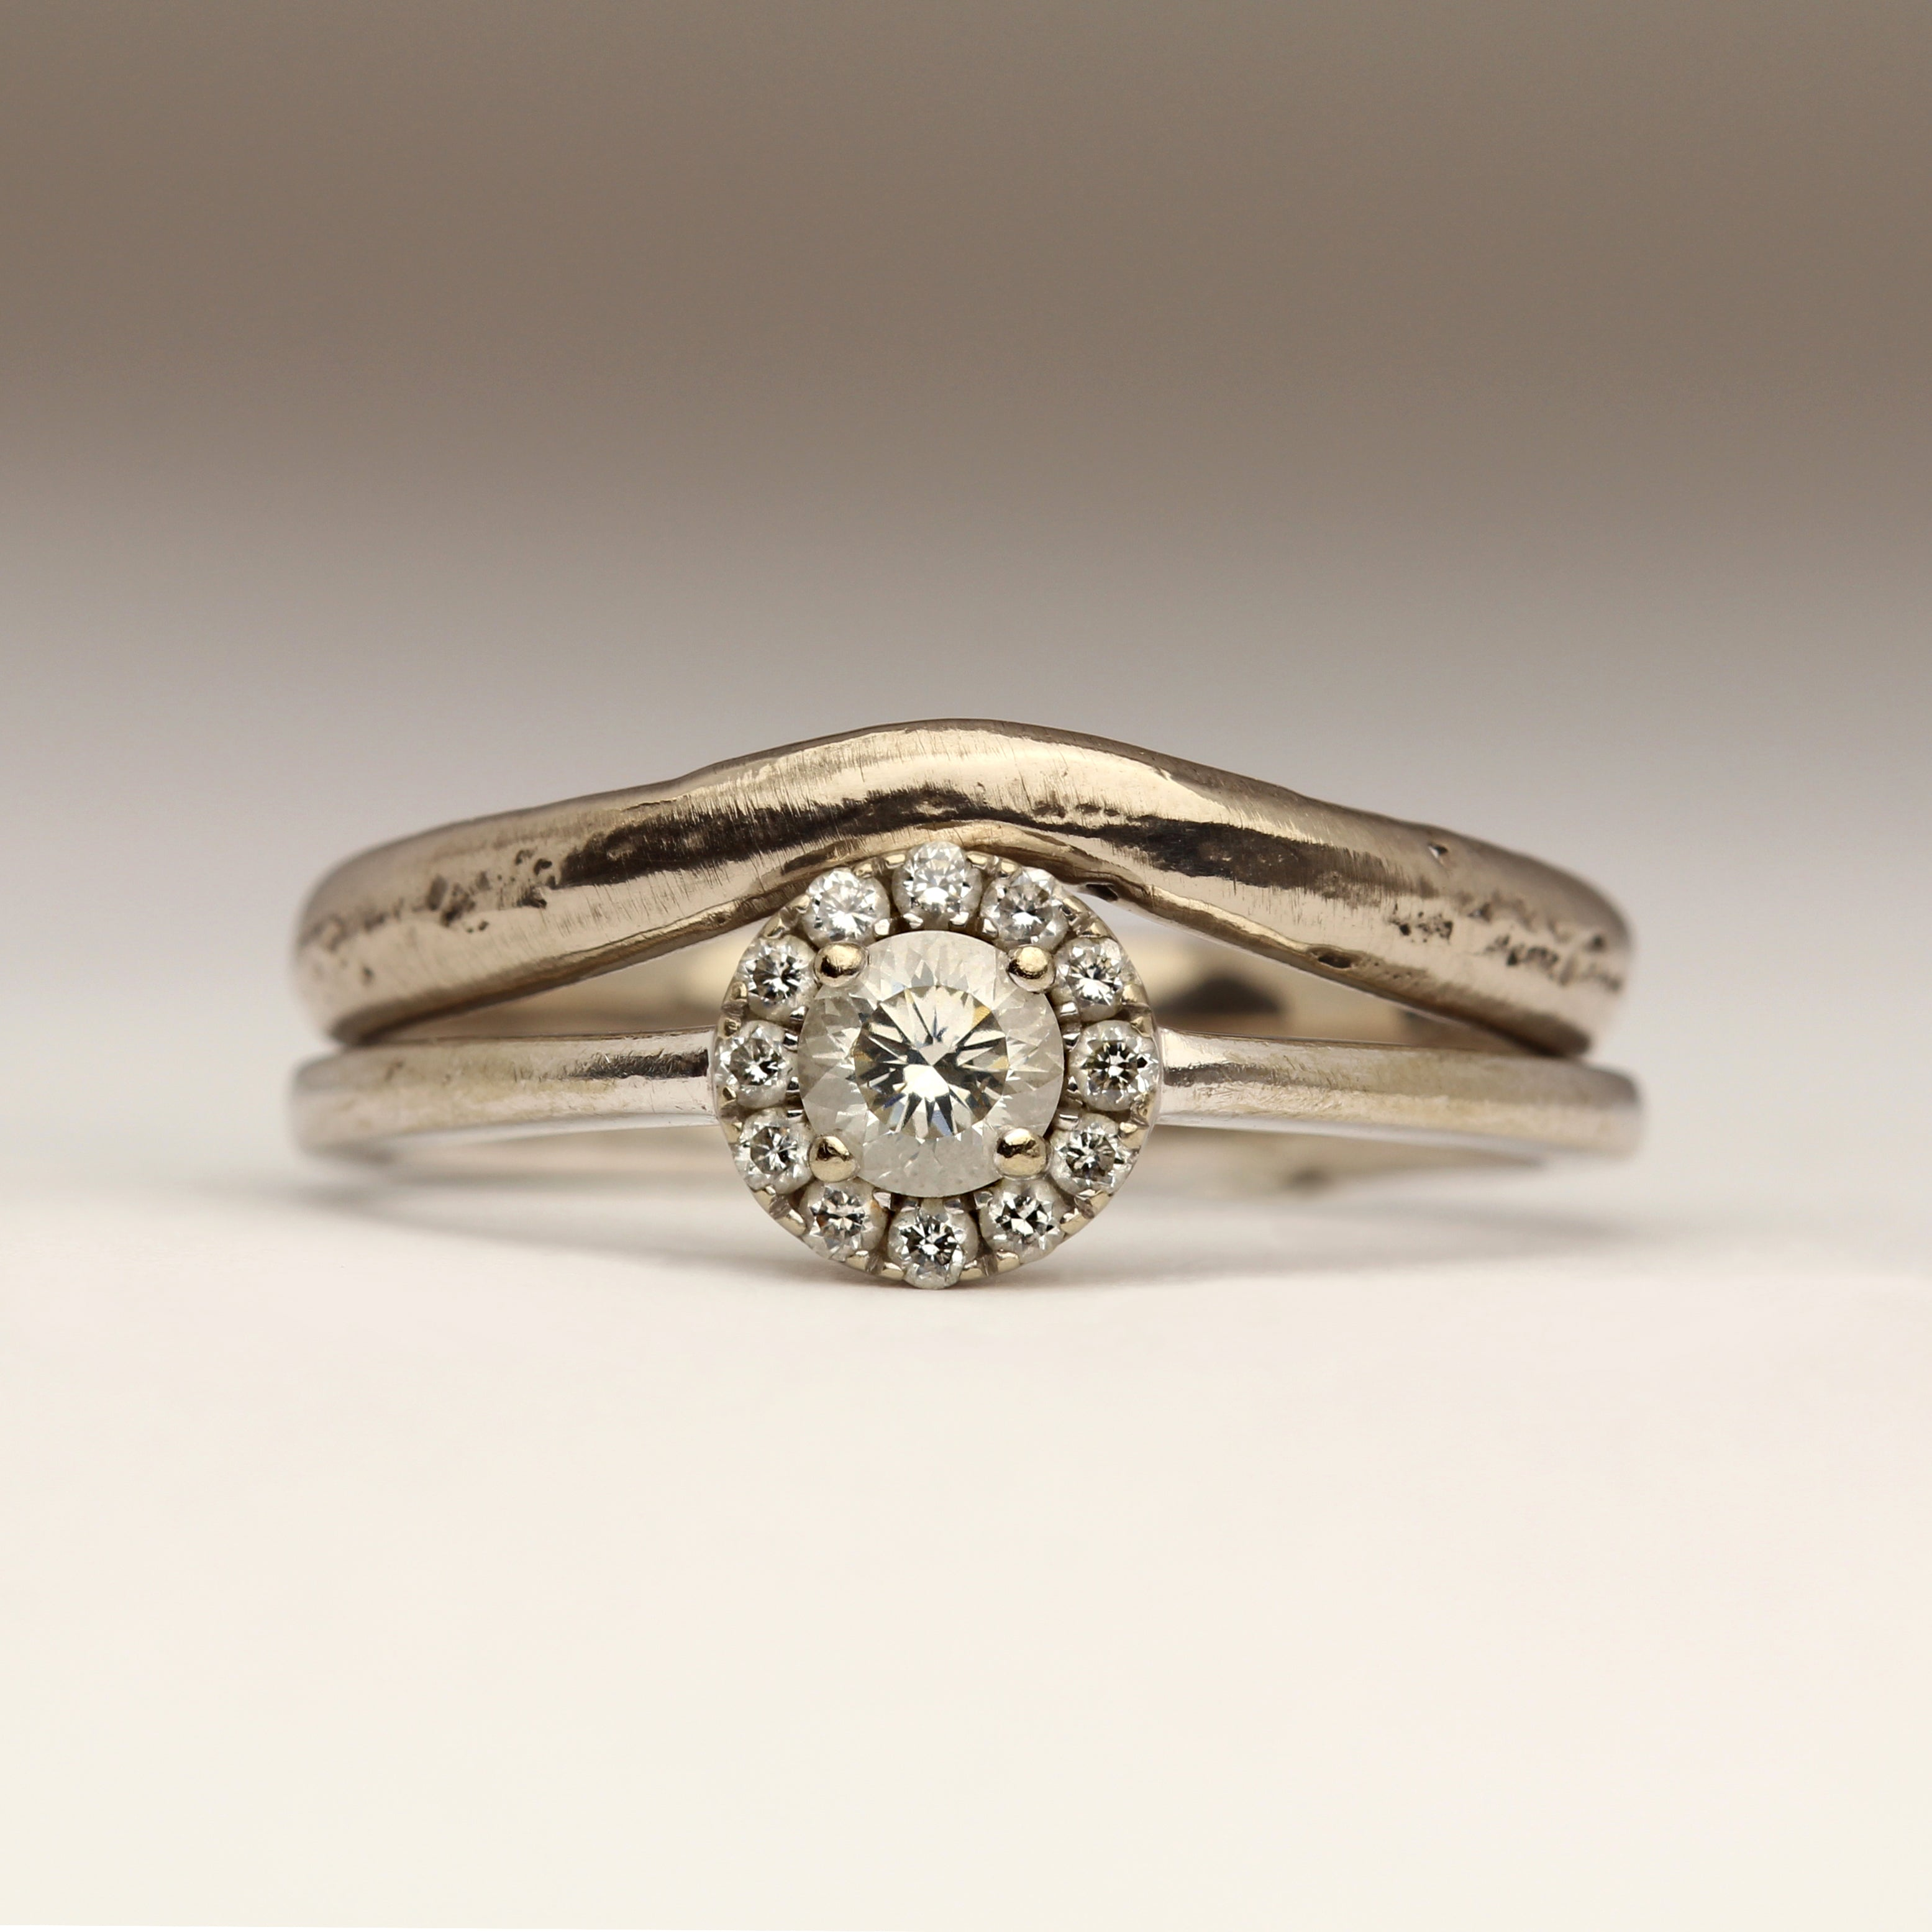 Sandcast ring with a gentle curved